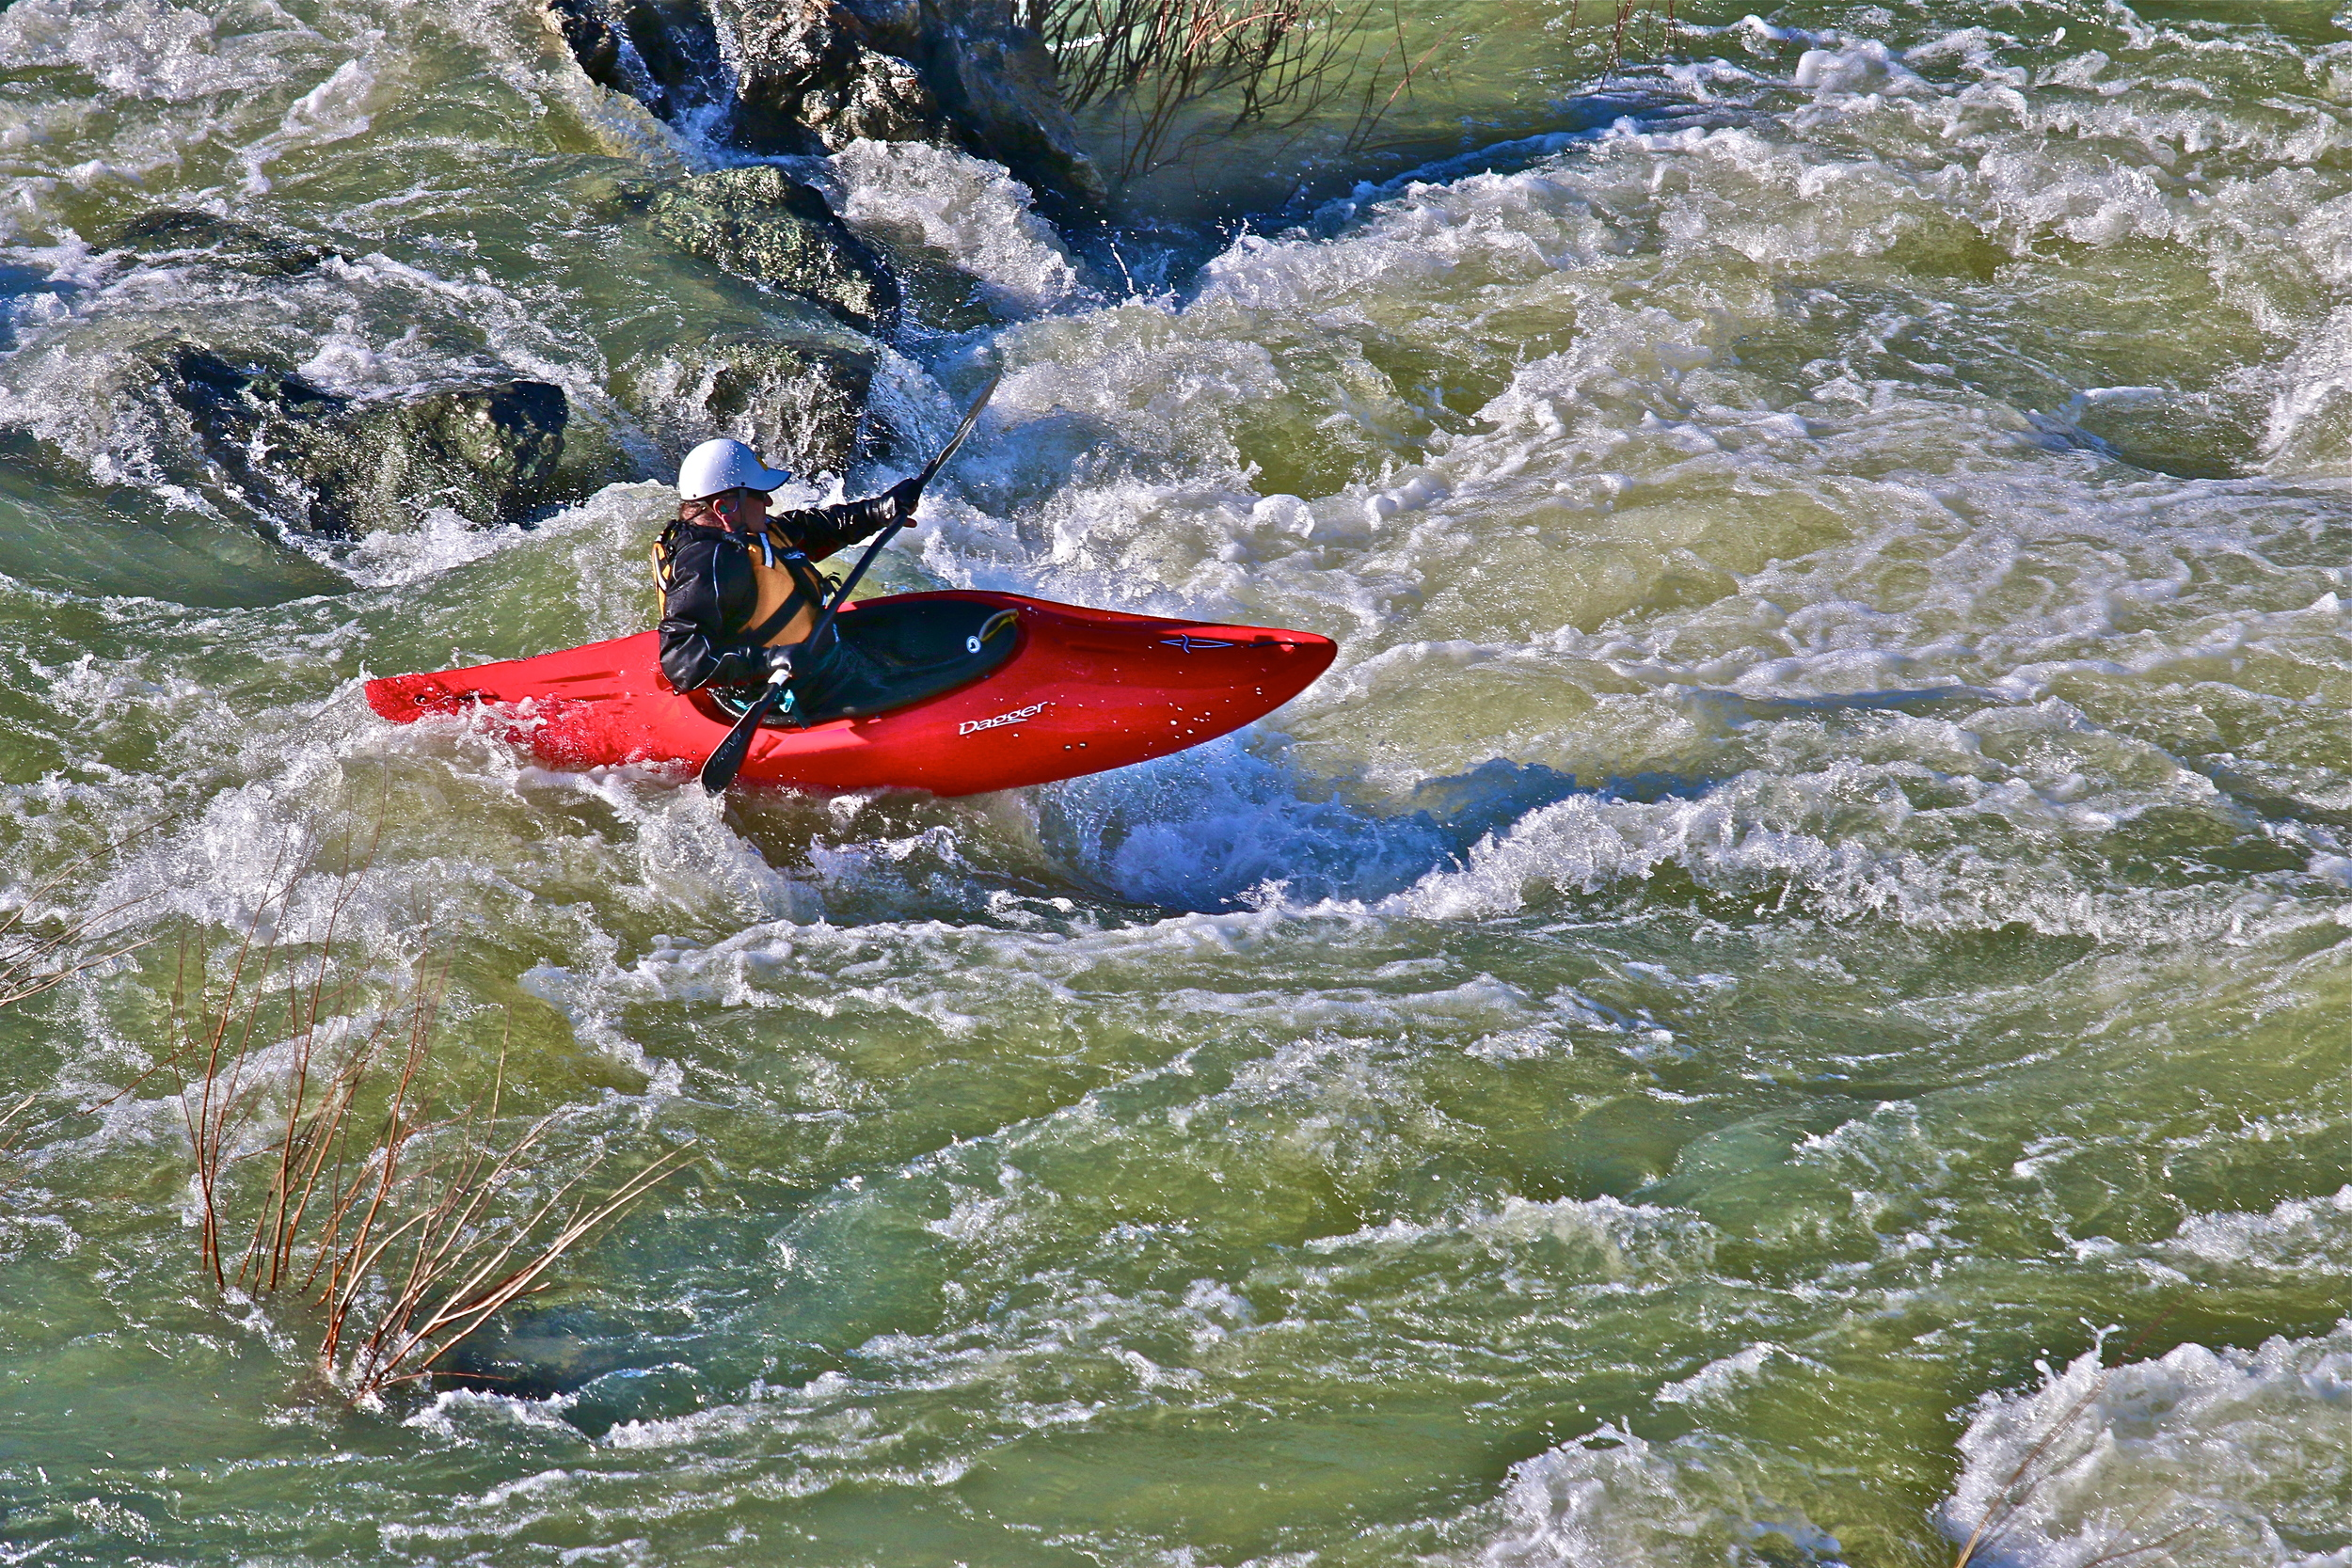 Whitewater river kayaking on Mendocino's Eel River